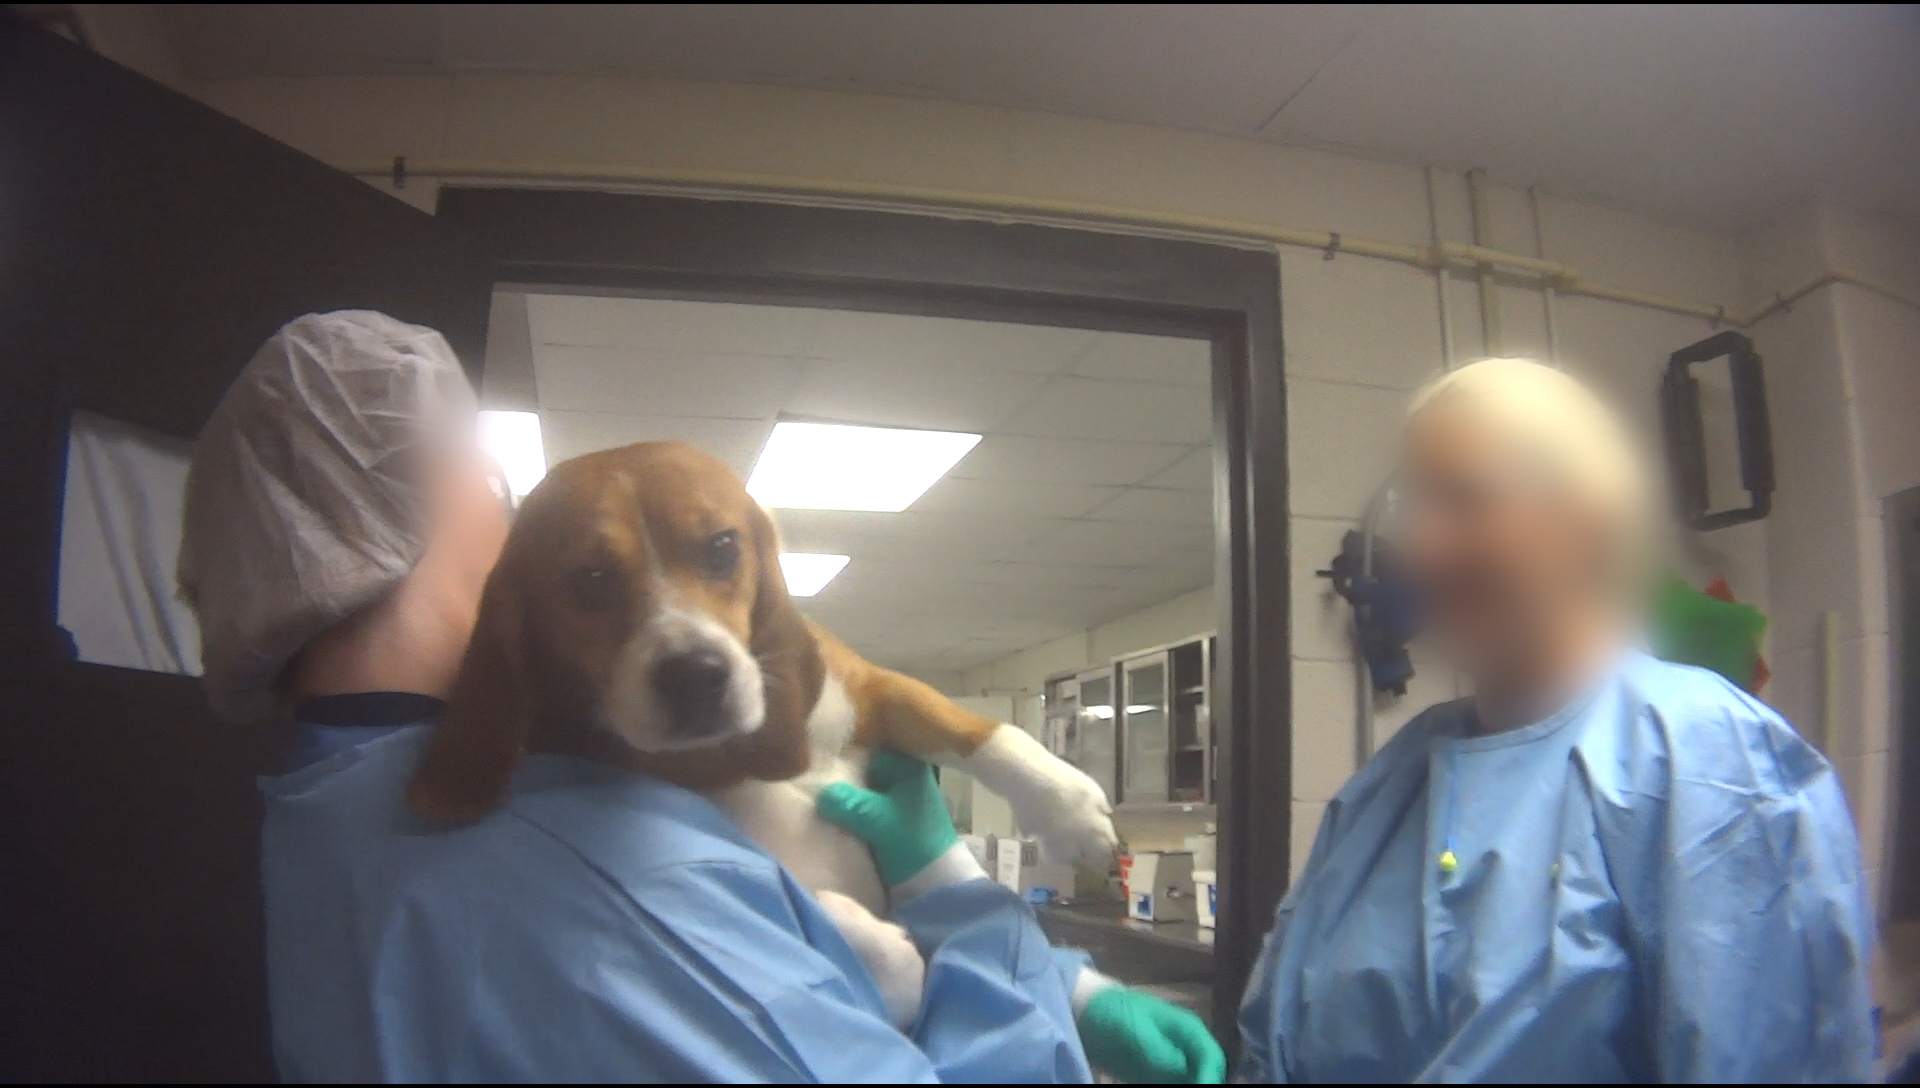 """Undercover investigation into Charles River Laboratories - Mattawan, MI. A beagle from the Paredox Therapeutics study - named Harvey by the staff - is handed over for euthanasia on August 27, 2018. When asked by the HSUS investigator why this particular dog received a name and not the others, a coworker replied """"You gotta earn it by being adorable."""" Paredox is a University of Vermont startup company."""